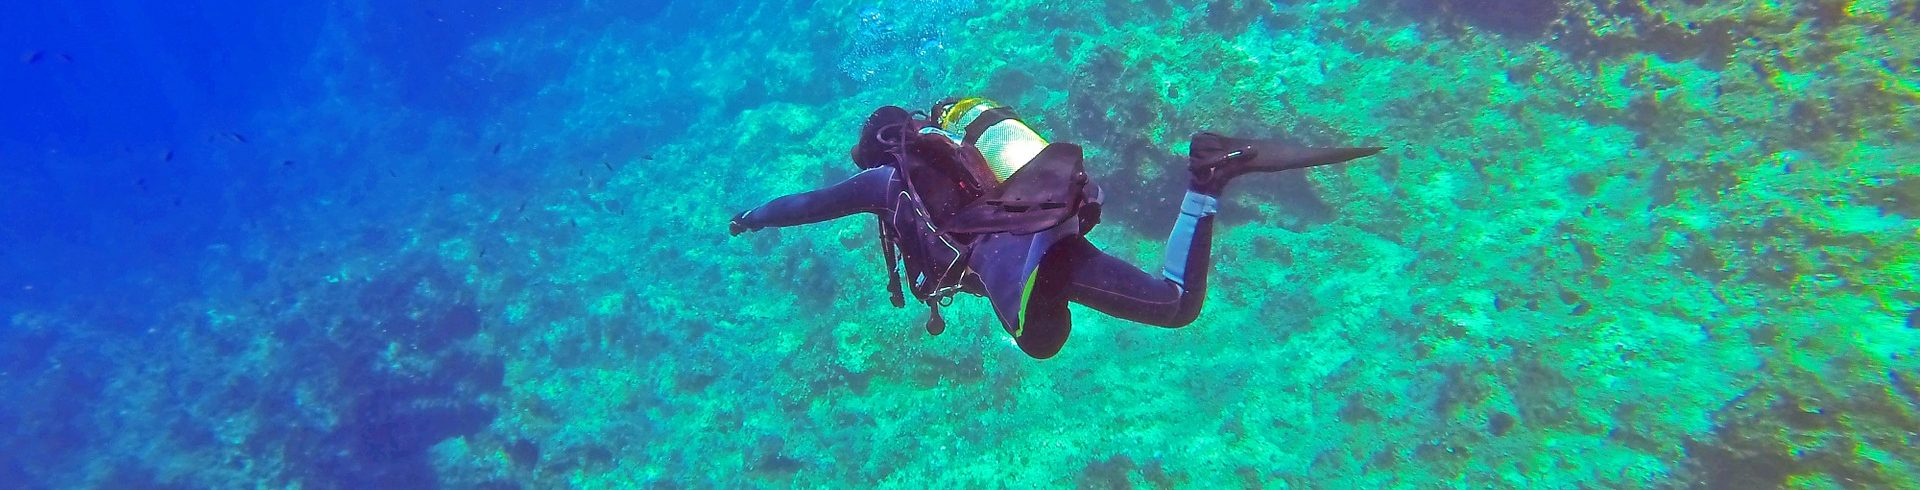 Promoting Malta as a Diver's Paradise